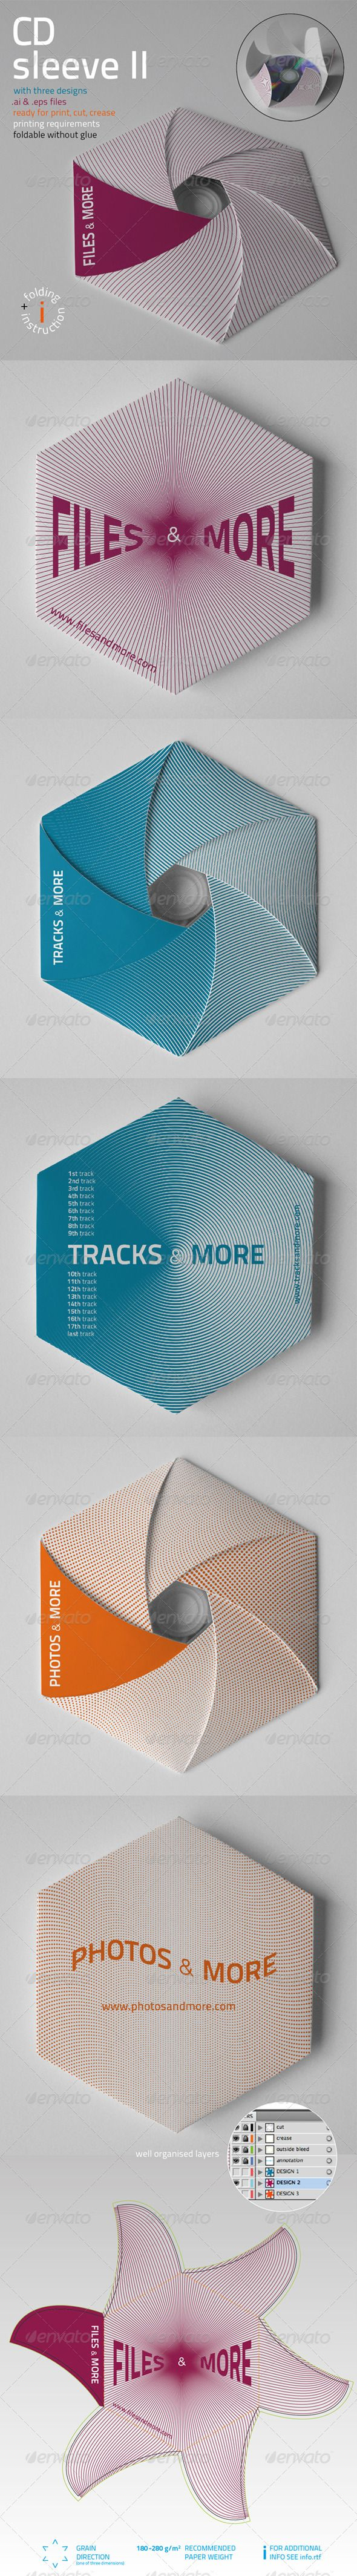 CD Sleeve v2 - GraphicRiver Item for Sale